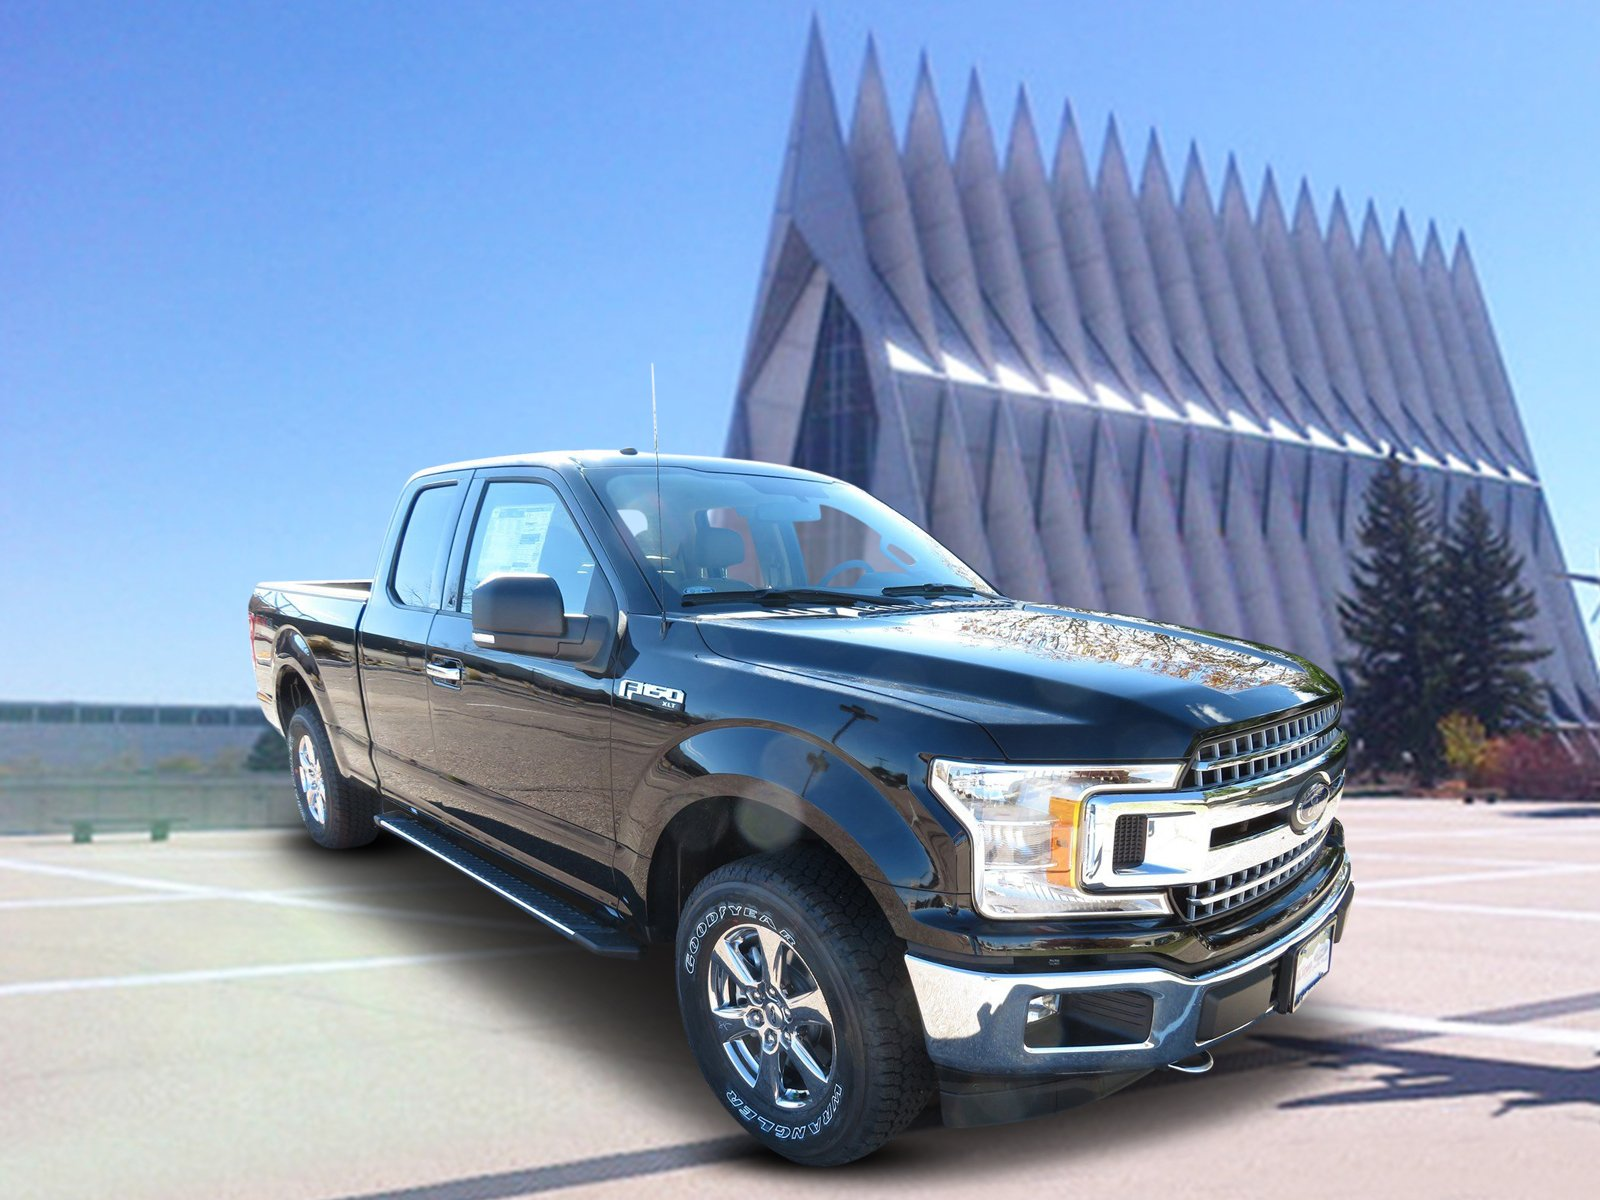 DYNAMIC_PREF_LABEL_INVENTORY_FEATURED_NEW_INVENTORY_FEATURED1_ALTATTRIBUTEBEFORE 2018 Ford F-150 XLT DYNAMIC_PREF_LABEL_INVENTORY_FEATURED_NEW_INVENTORY_FEATURED1_ALTATTRIBUTEAFTER